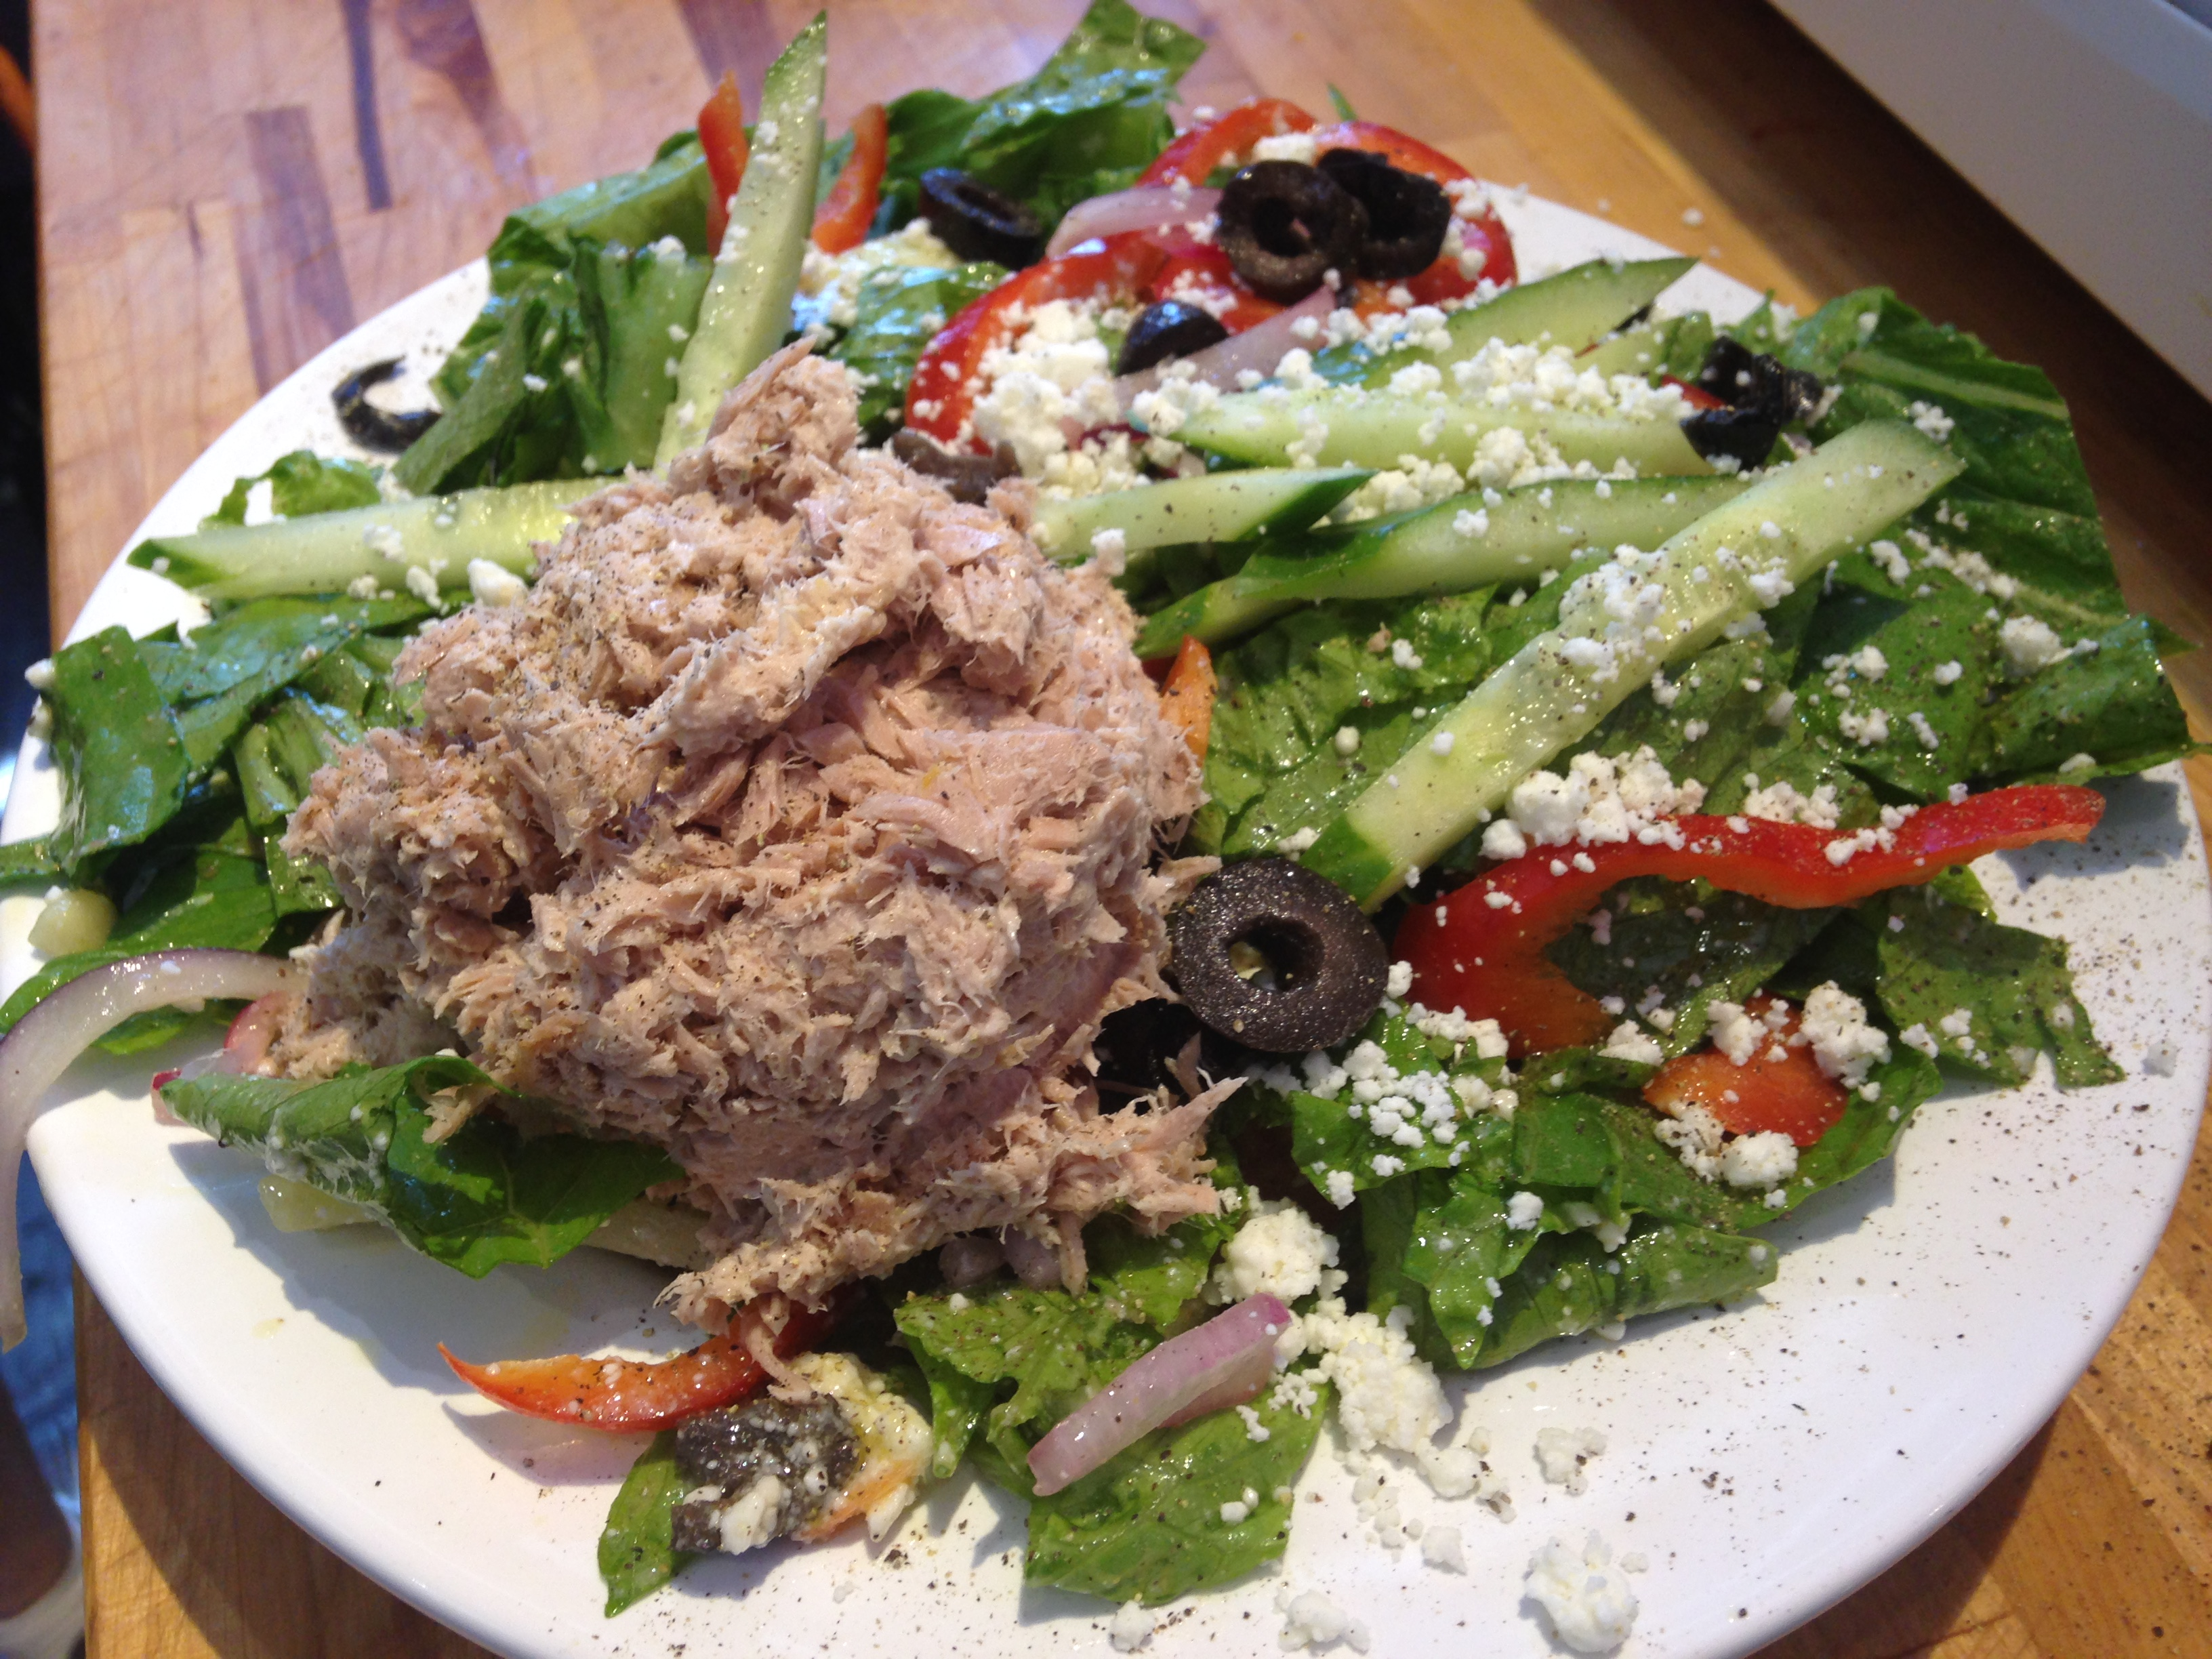 GREEK SALAD WITH TUNA ADDED